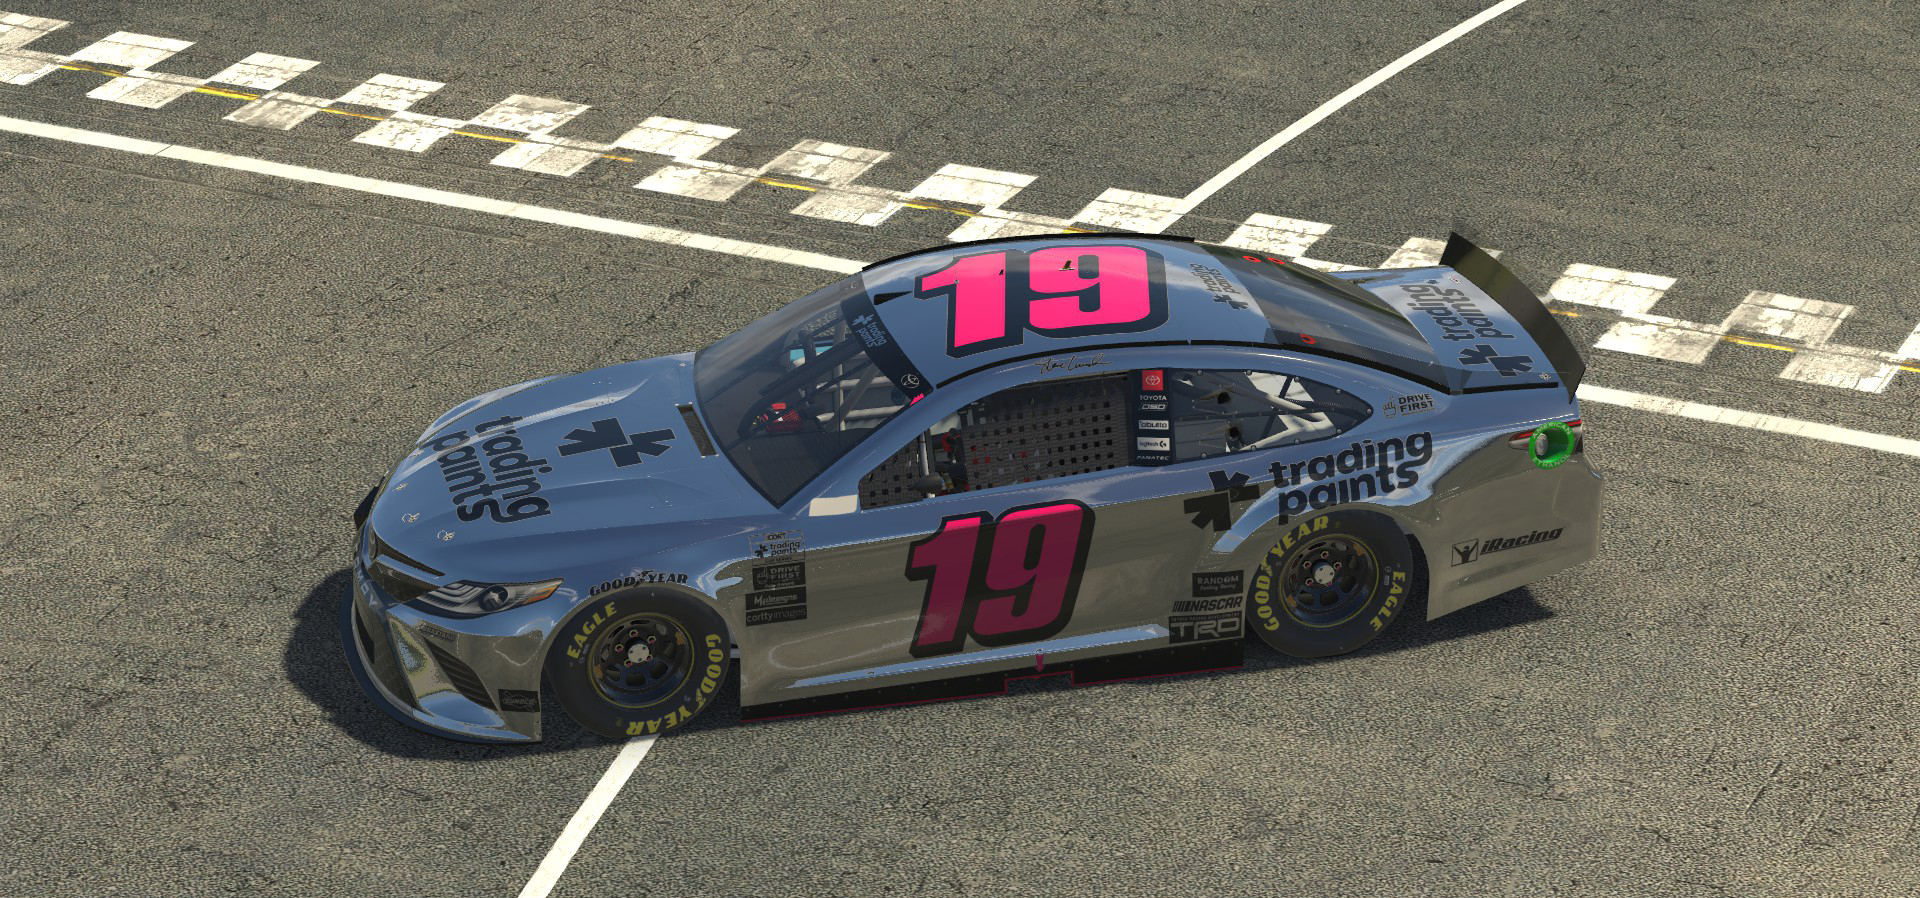 Paint Textures Iracing Com Iracing Com Motorsport Simulations